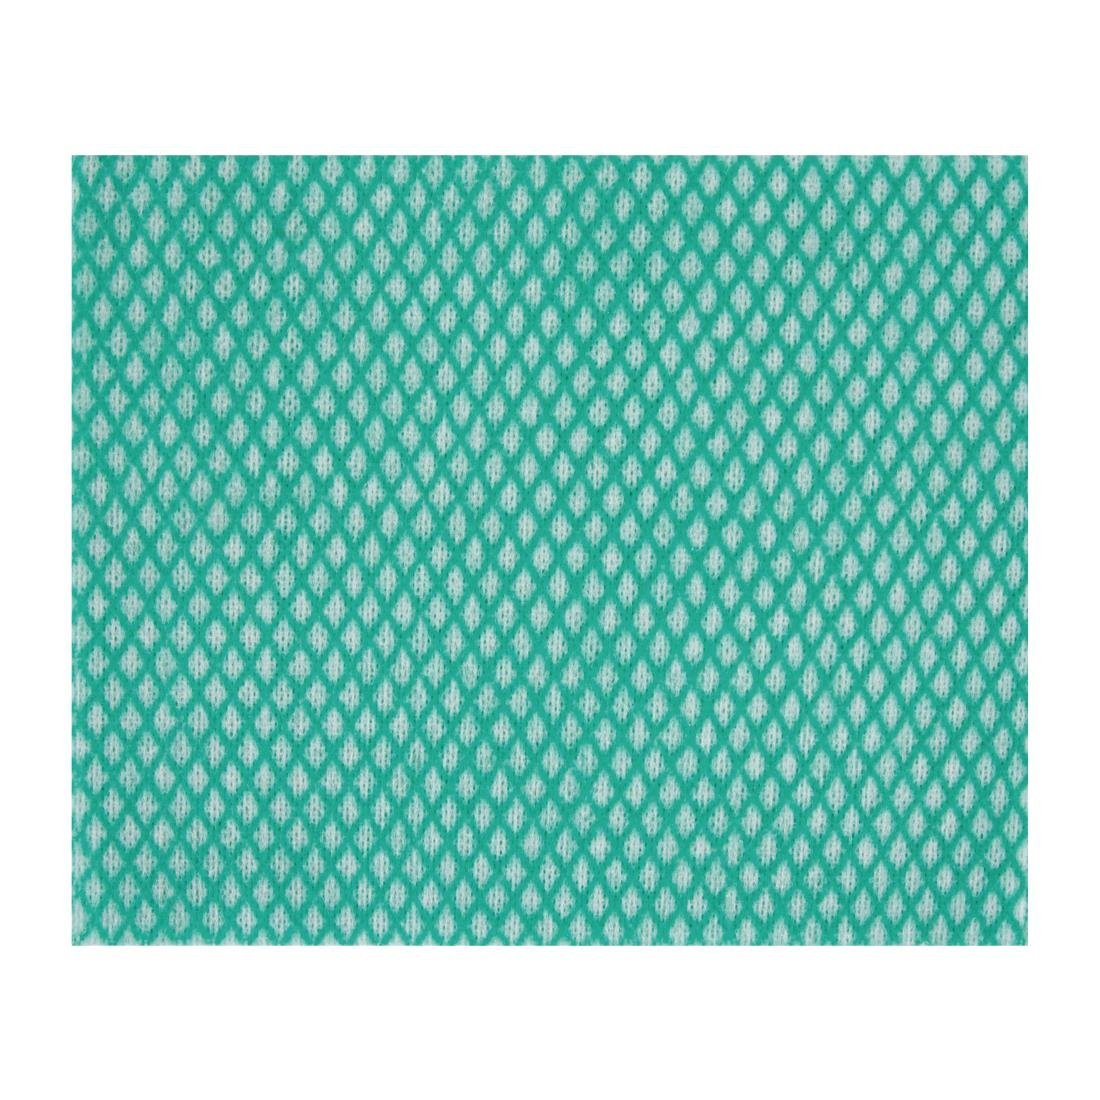 Jantex Solonet Cloths Green (Pack of 50)